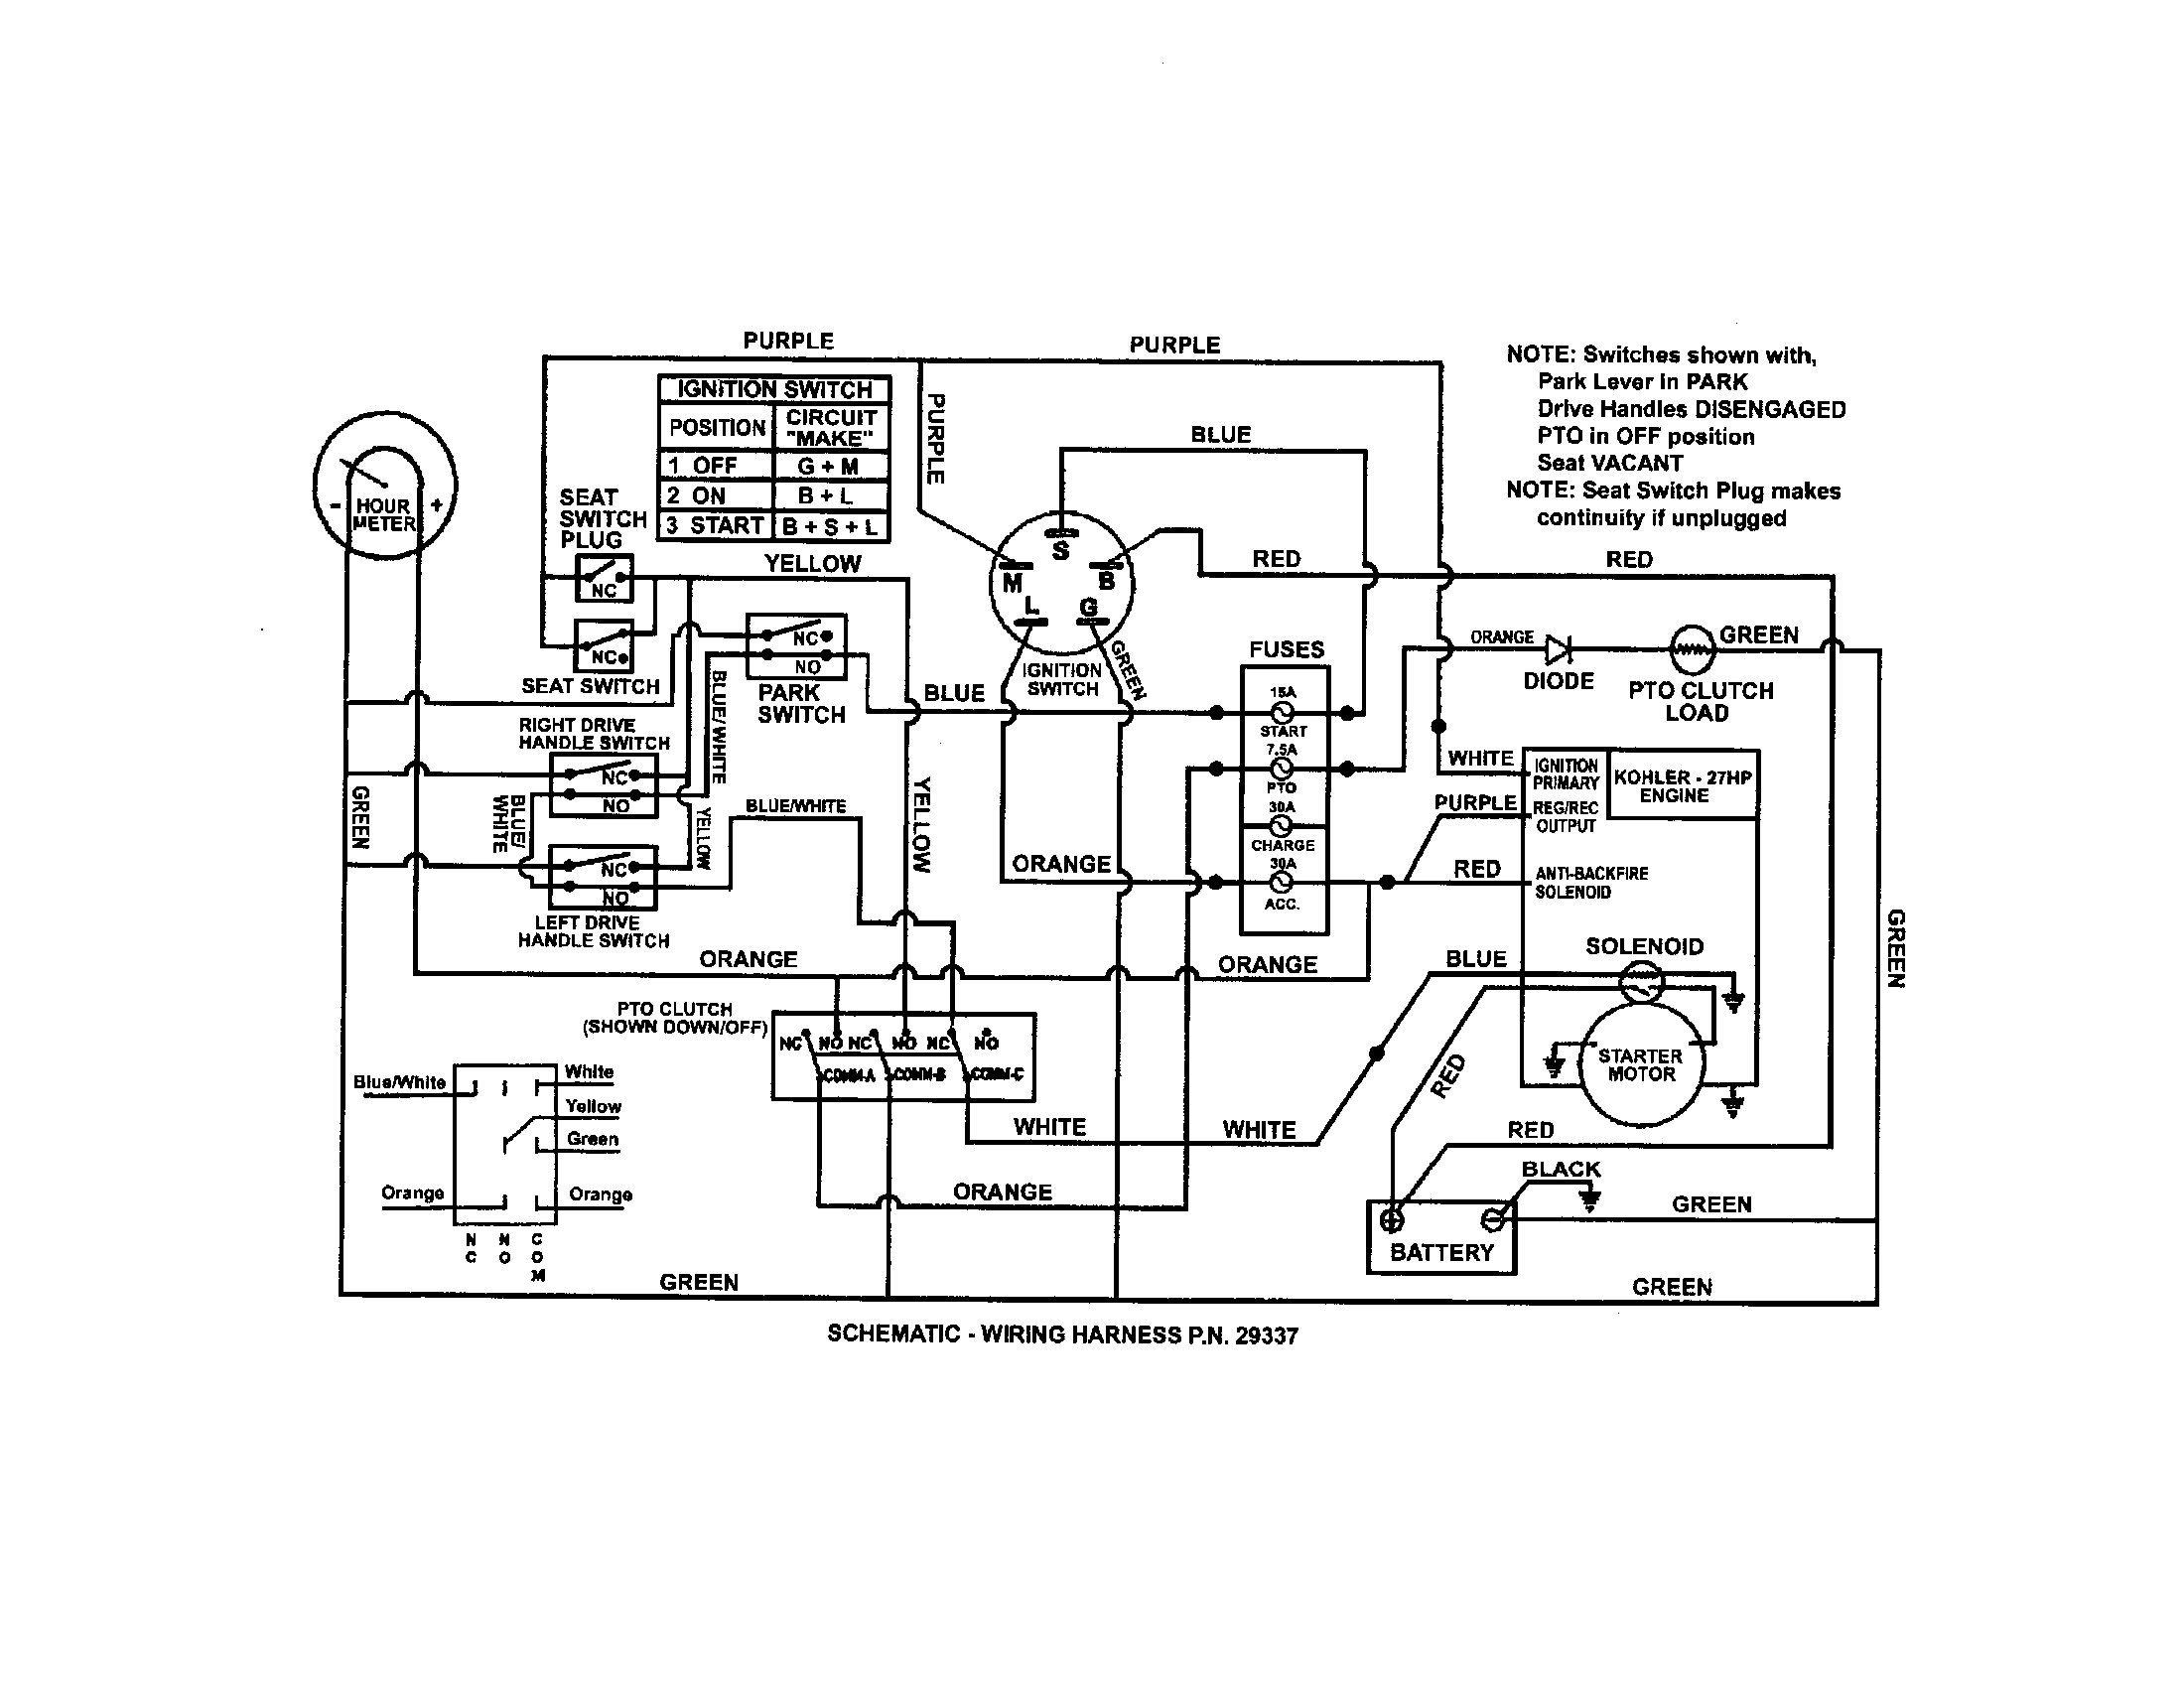 Wiring Diagram For 25 Hp Kohler Engine